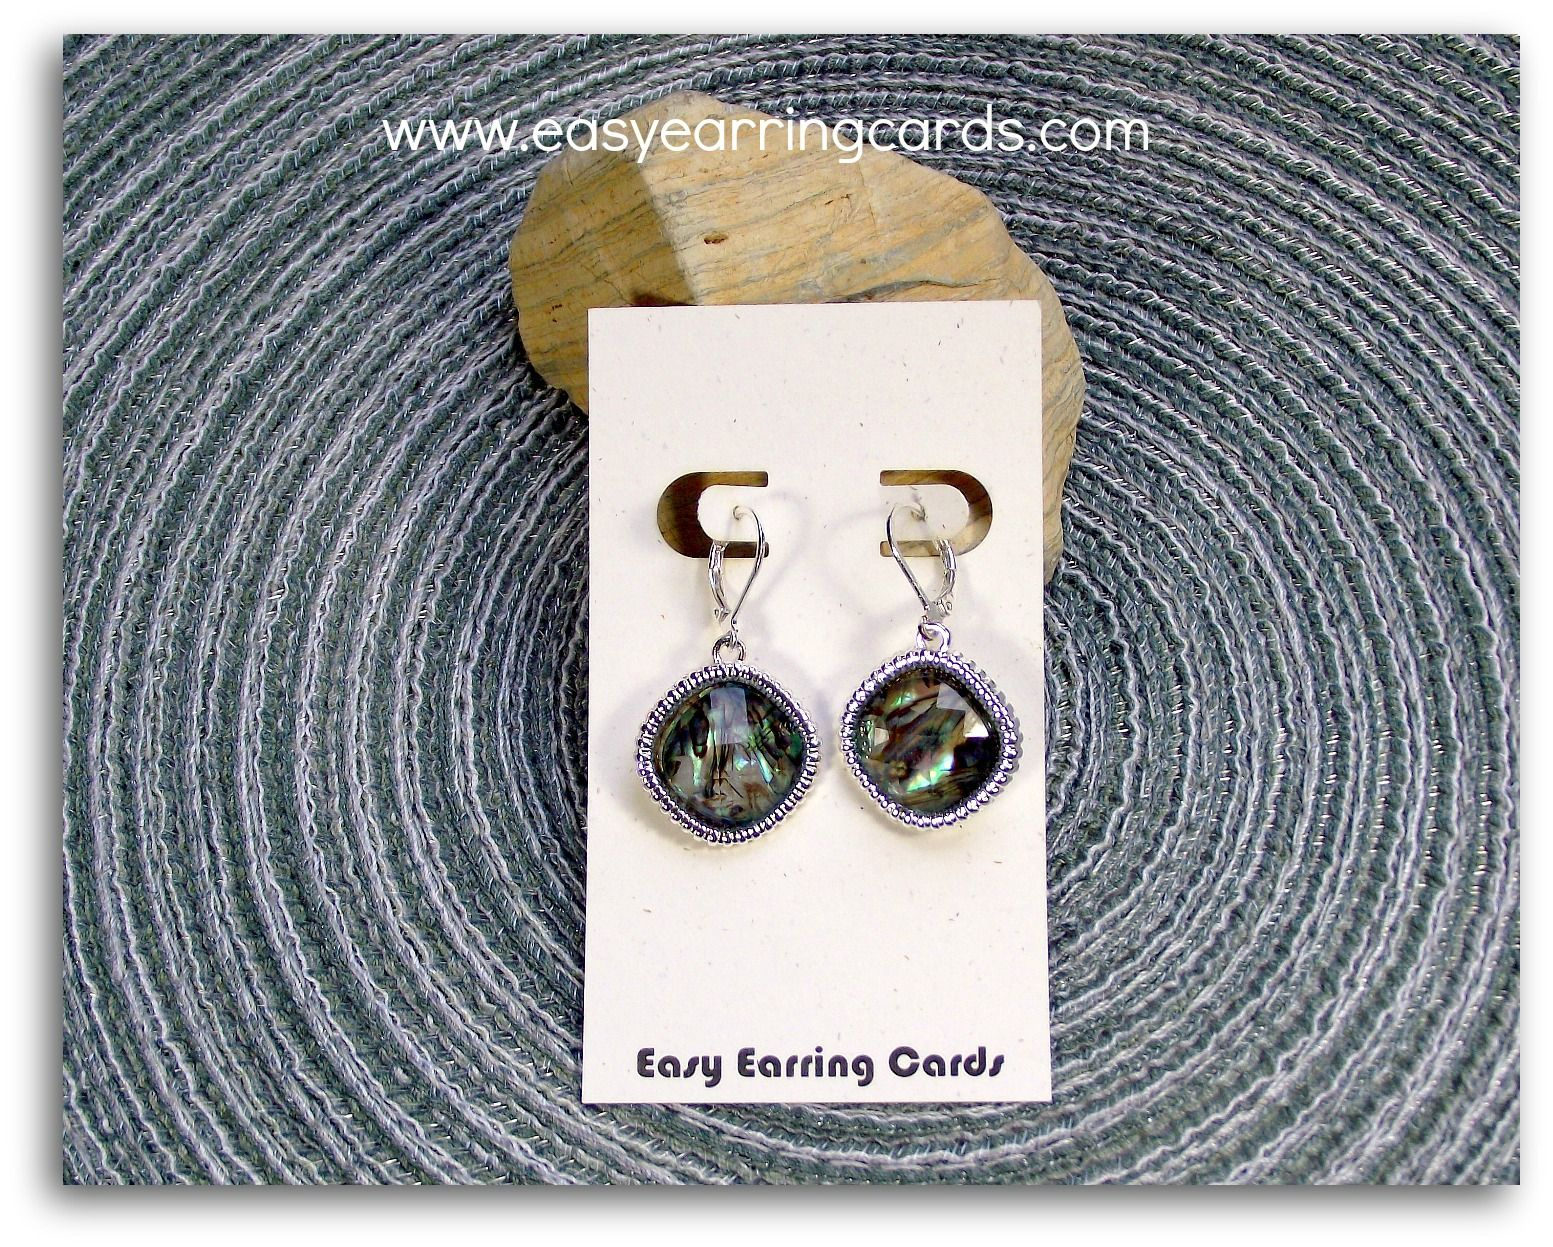 Professional Style Earring Card Made With Printer And